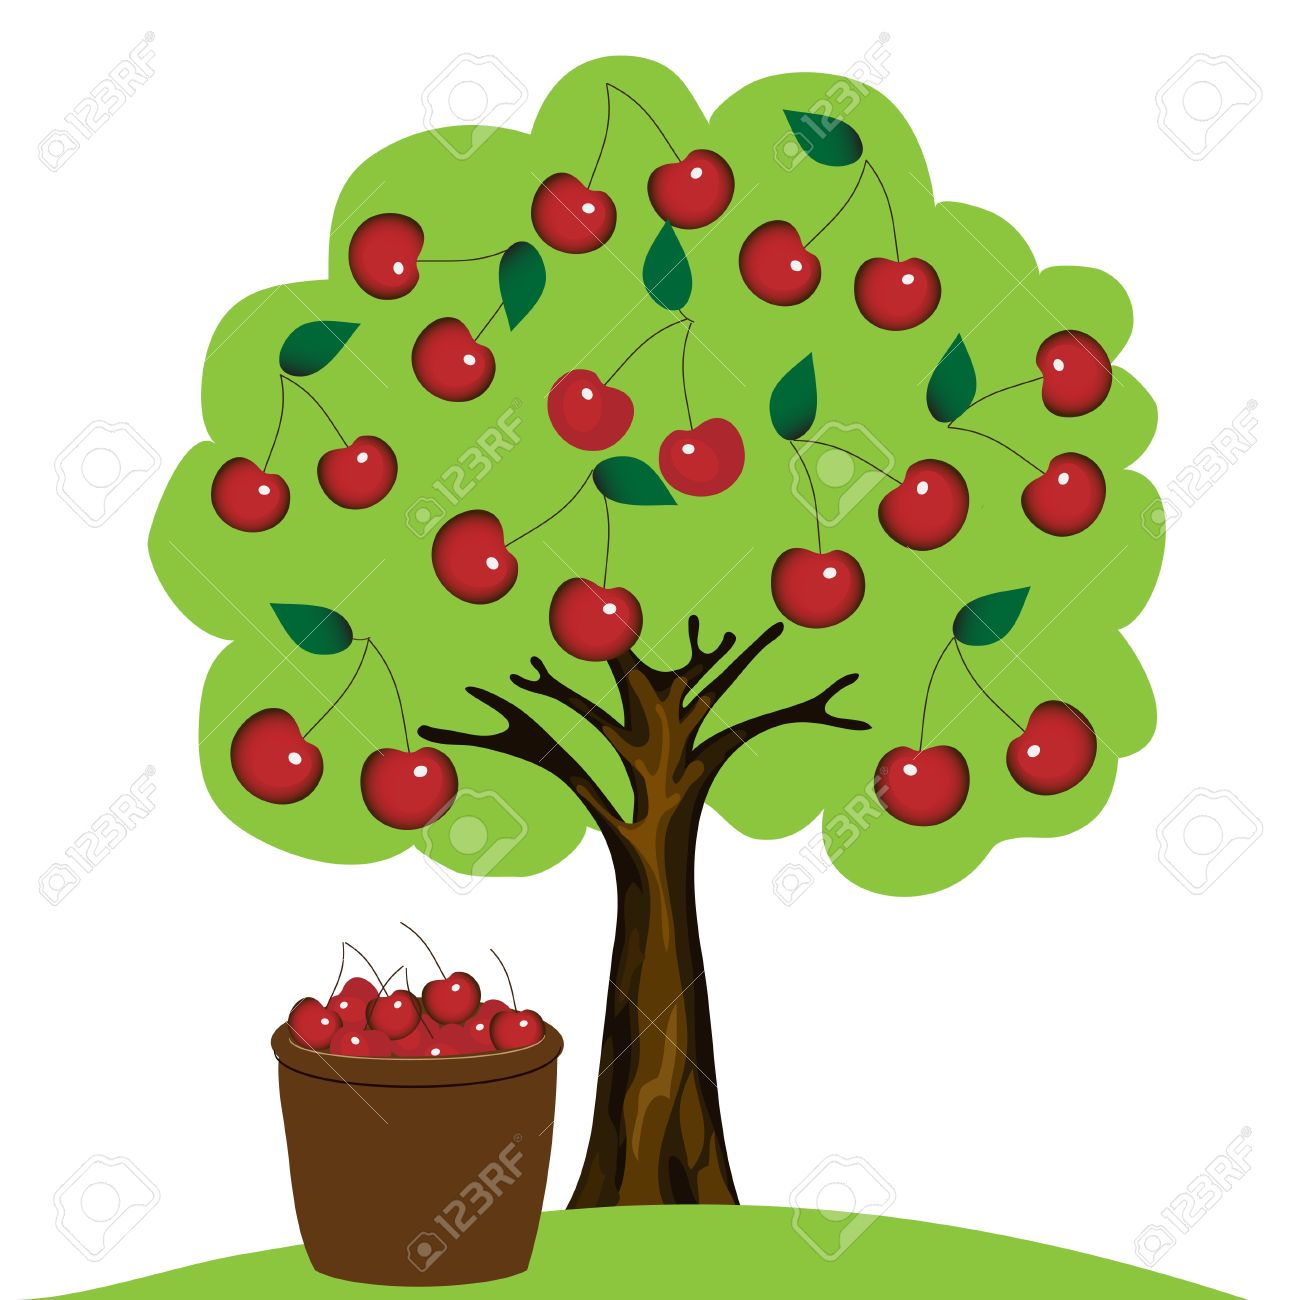 Cherry trees clipart - Clipground